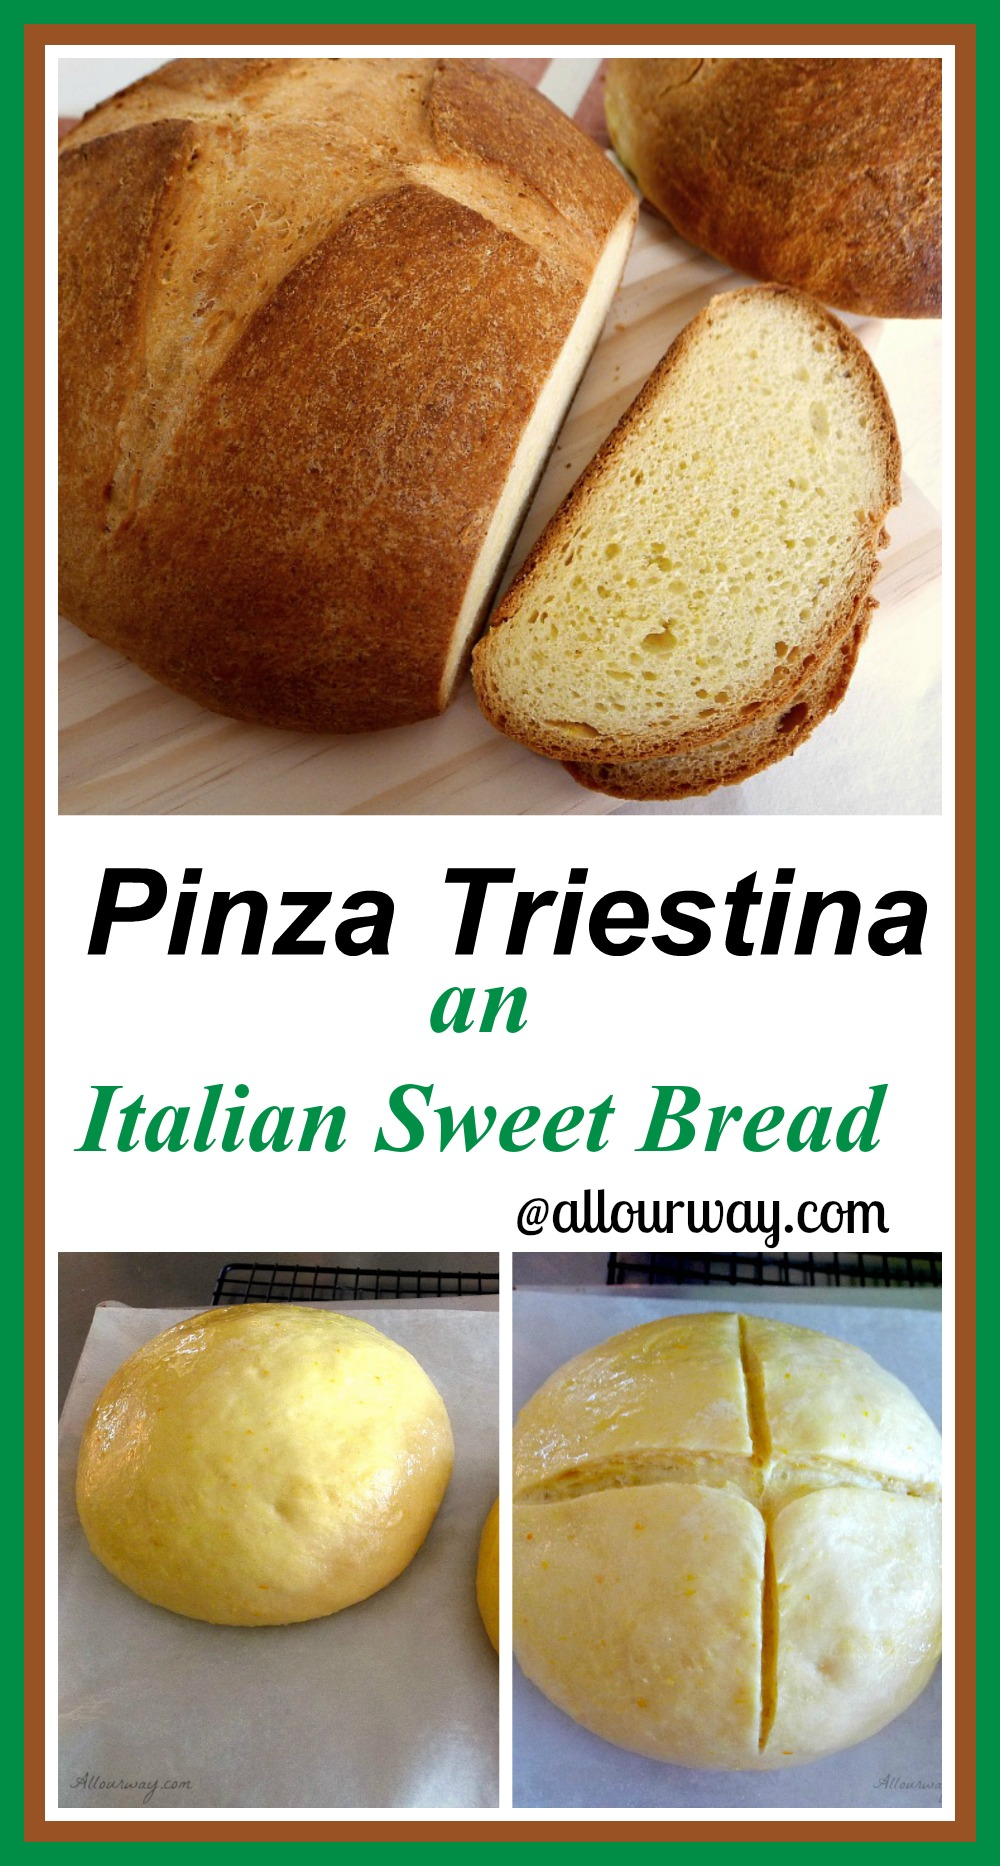 Pinza triestina is a rich egg bread such as brioche with an orange flavor. It is usually served on Easter morning but is delicious any time of year @allourway.com